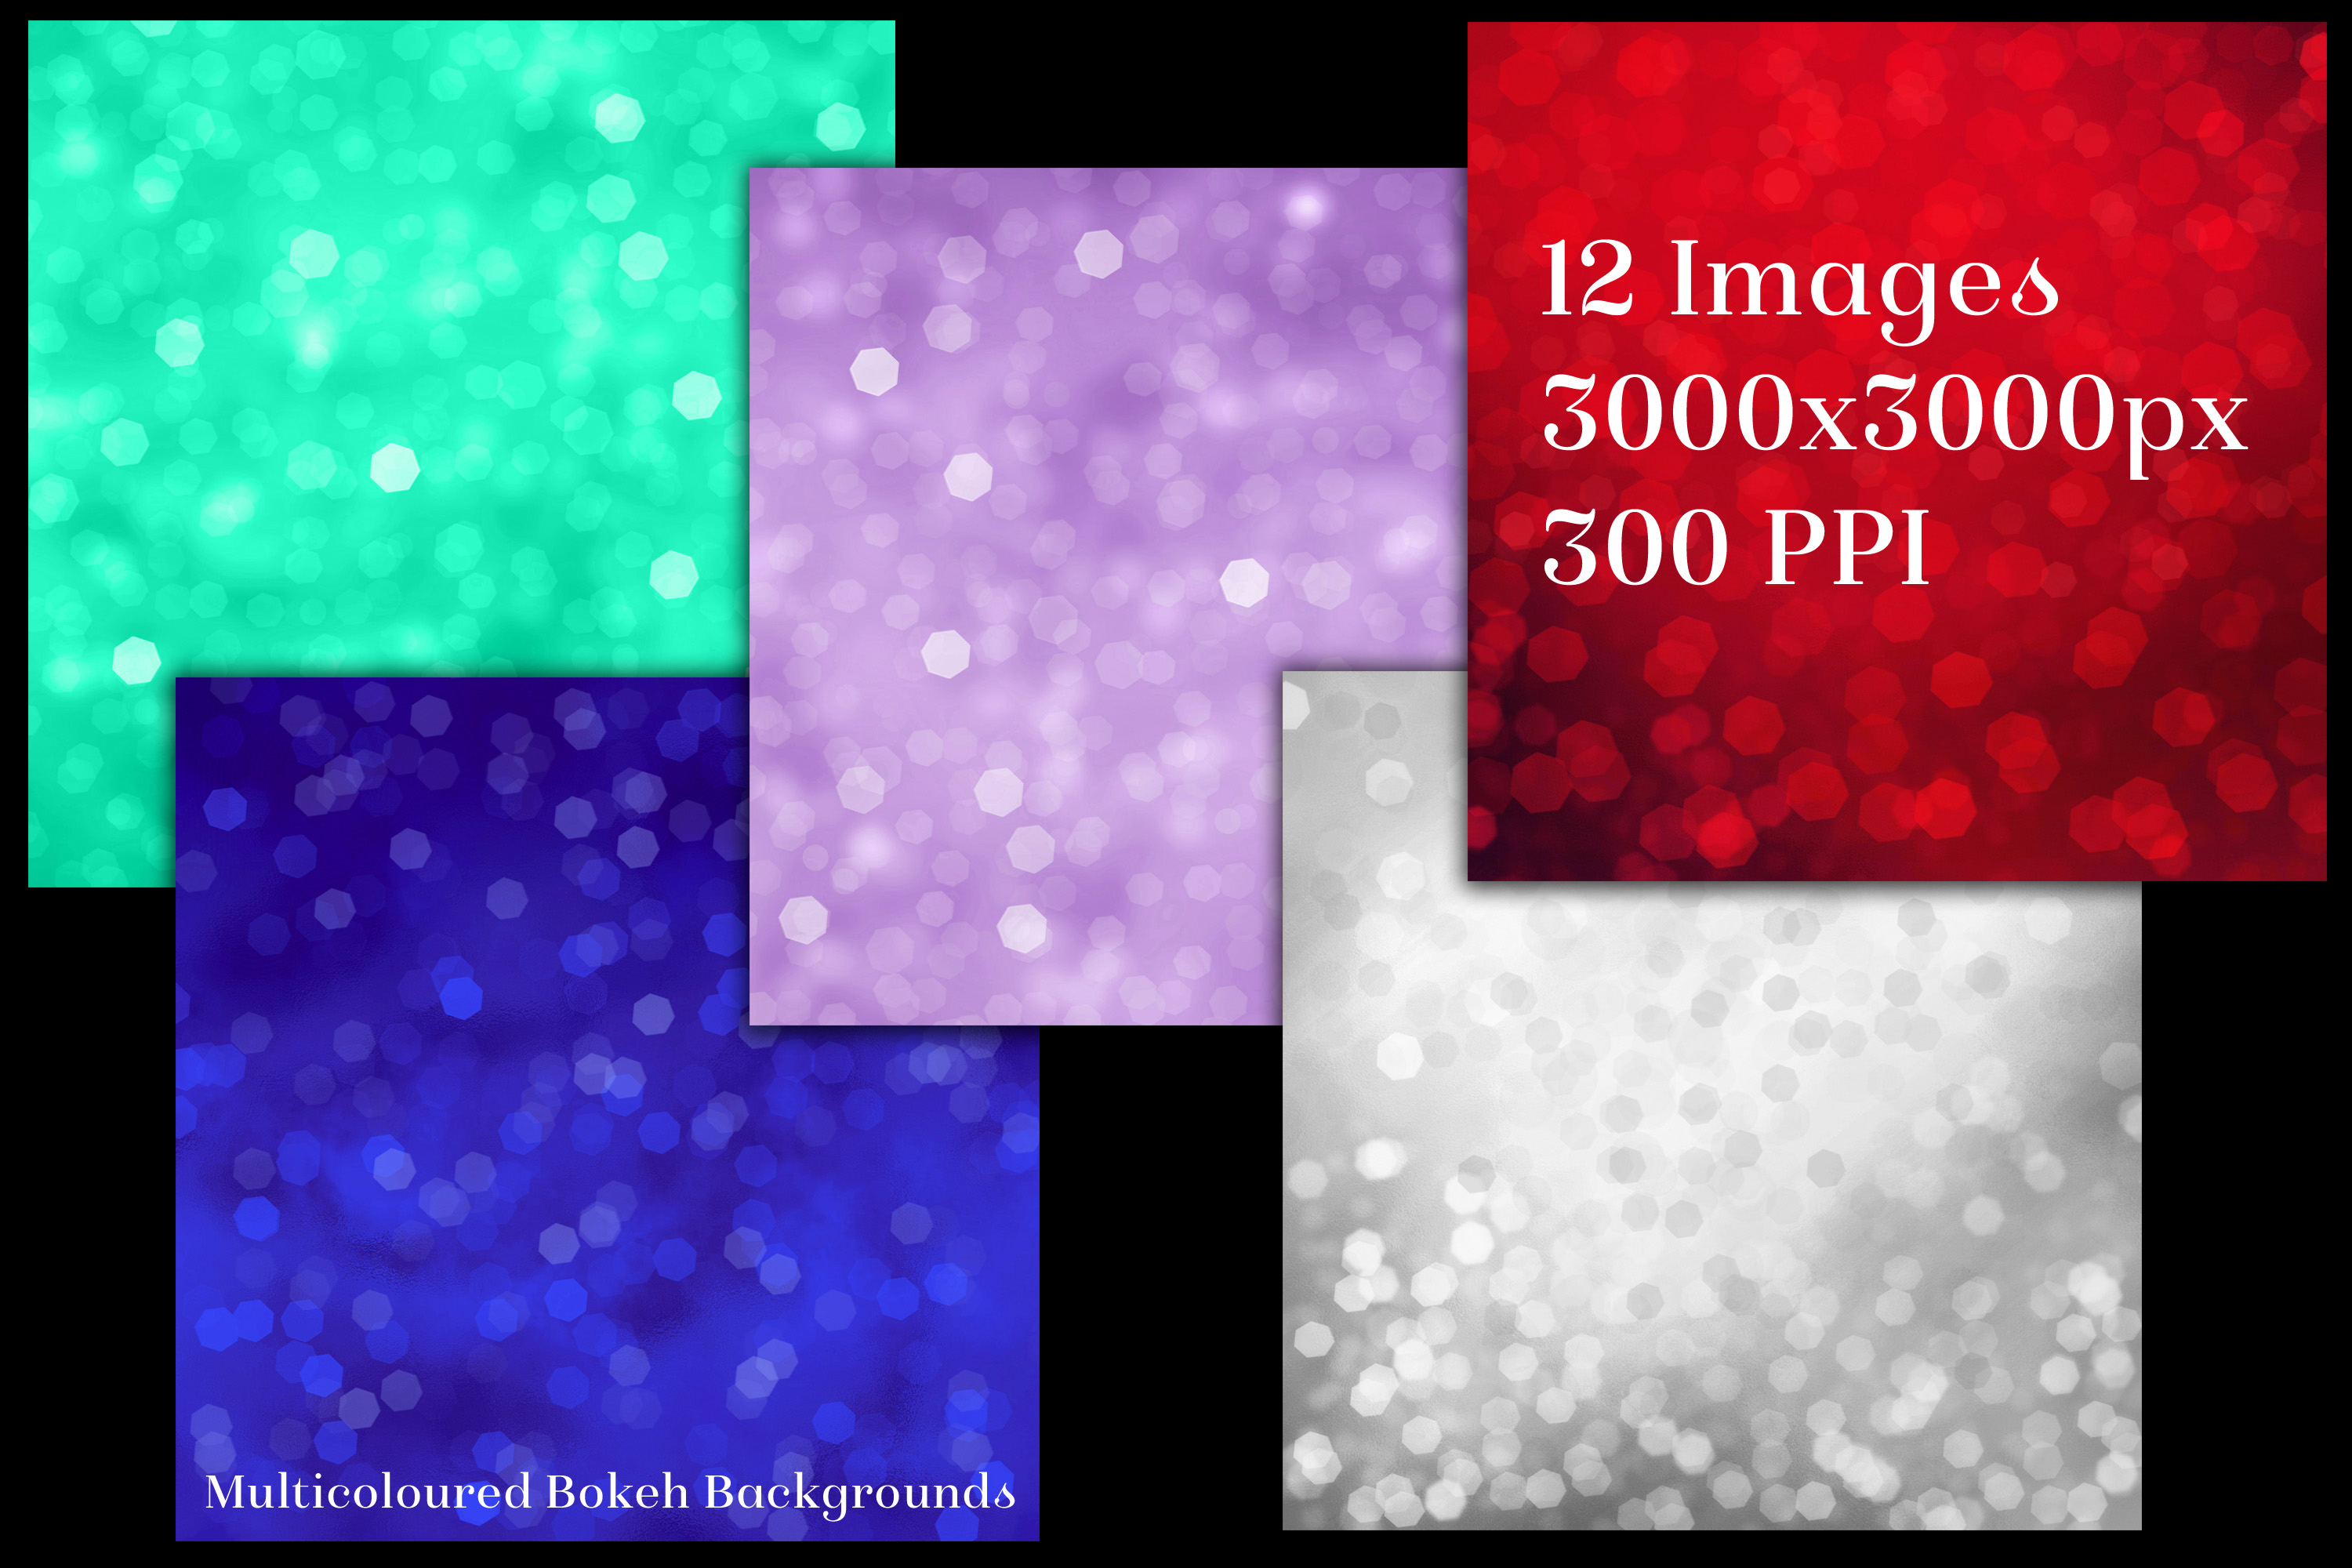 Multicoloured Bokeh Backgrounds - 12 Image Textures Set example image 2